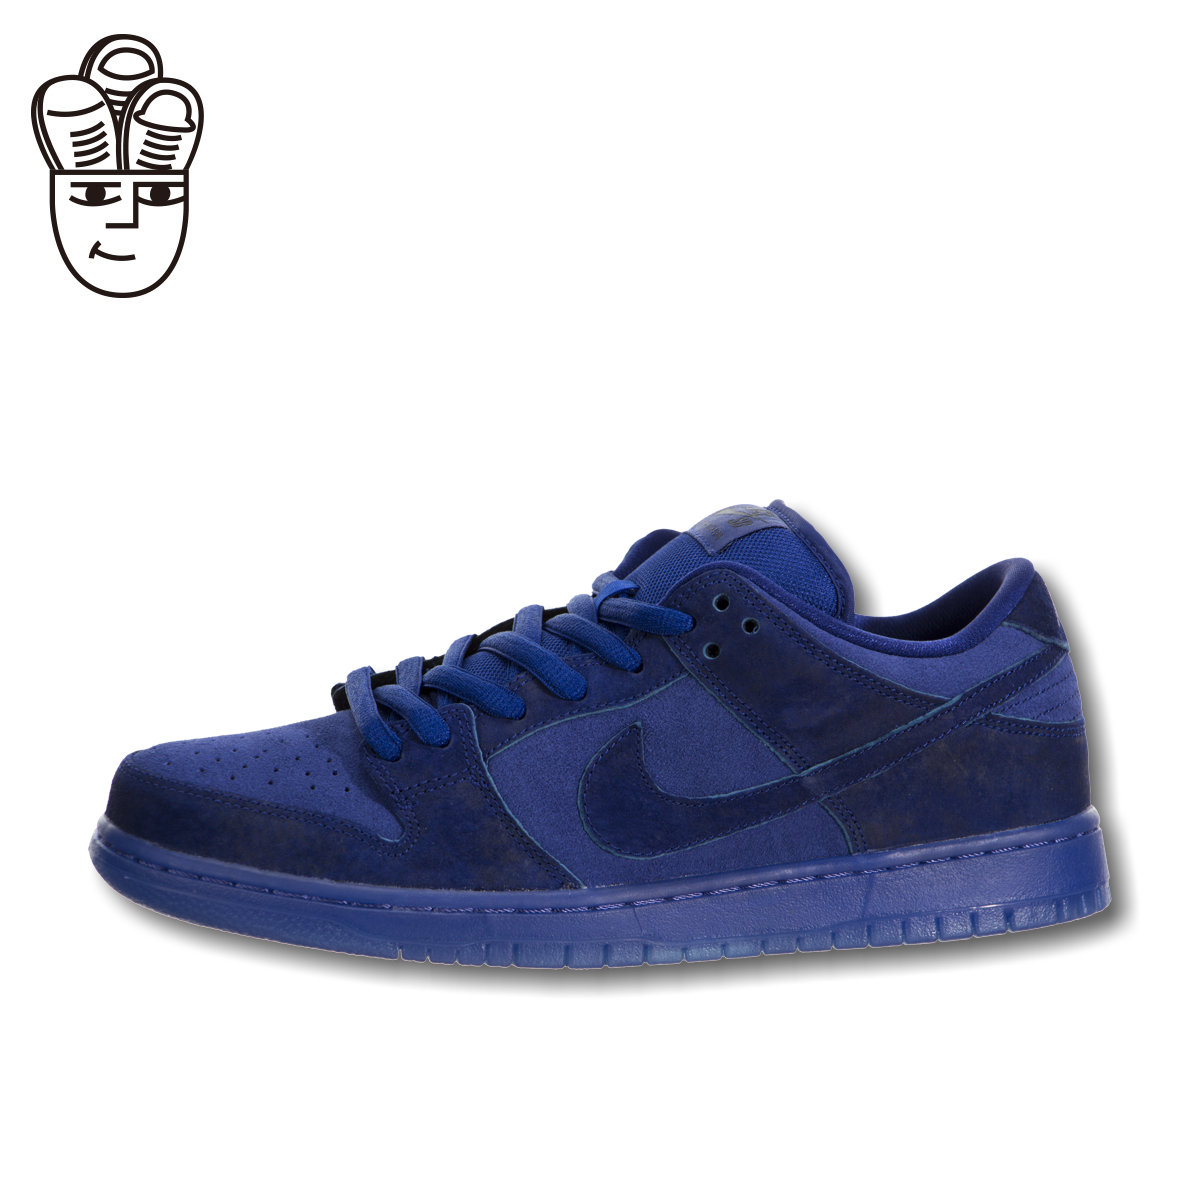 huge selection of 73d17 99e83 Get Quotations · Nike dunk low pro sb nike mens casual shoes to help low  shoes 313170